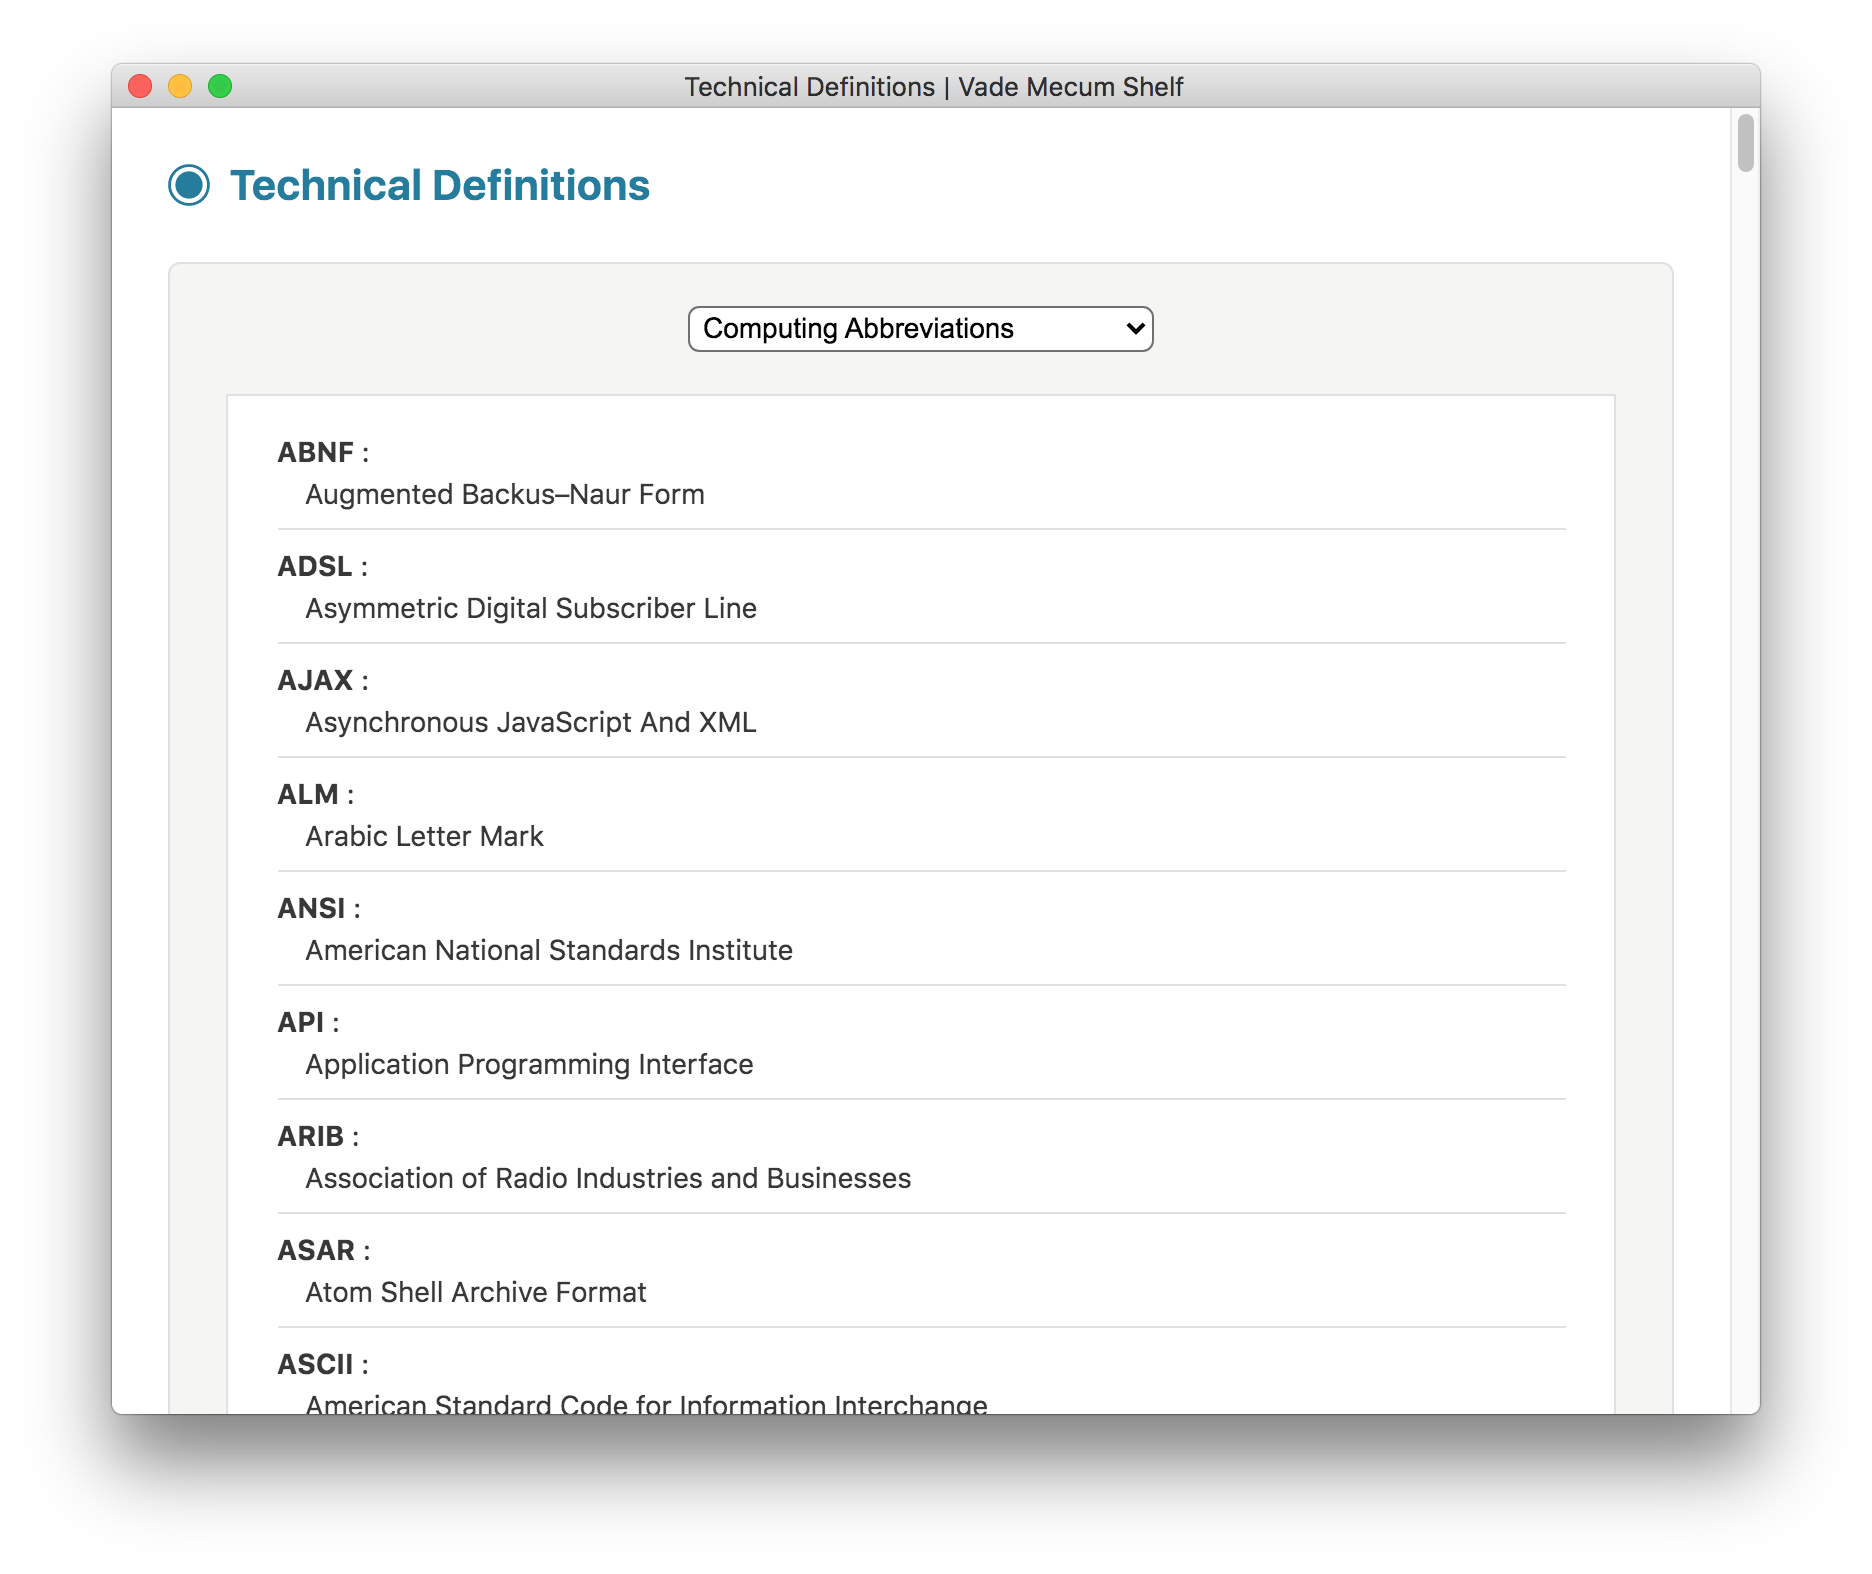 Technical Definitions screenshot